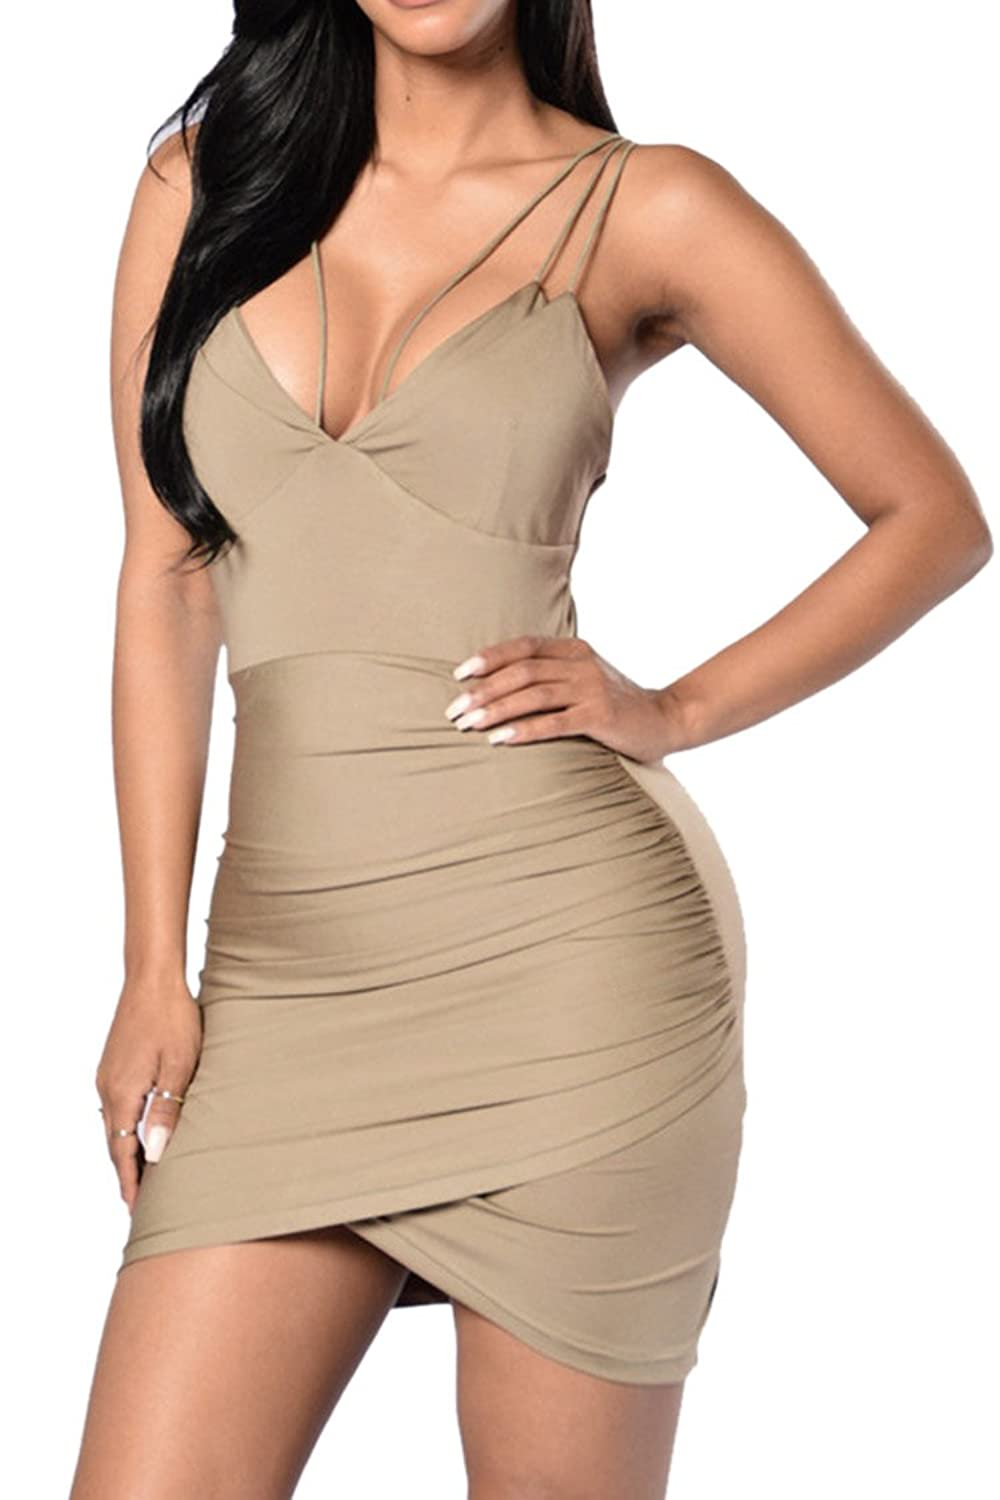 Merry21 Women's Ruched Wrap Backless Club Lace Up Bandage Bodycon Mini Dress